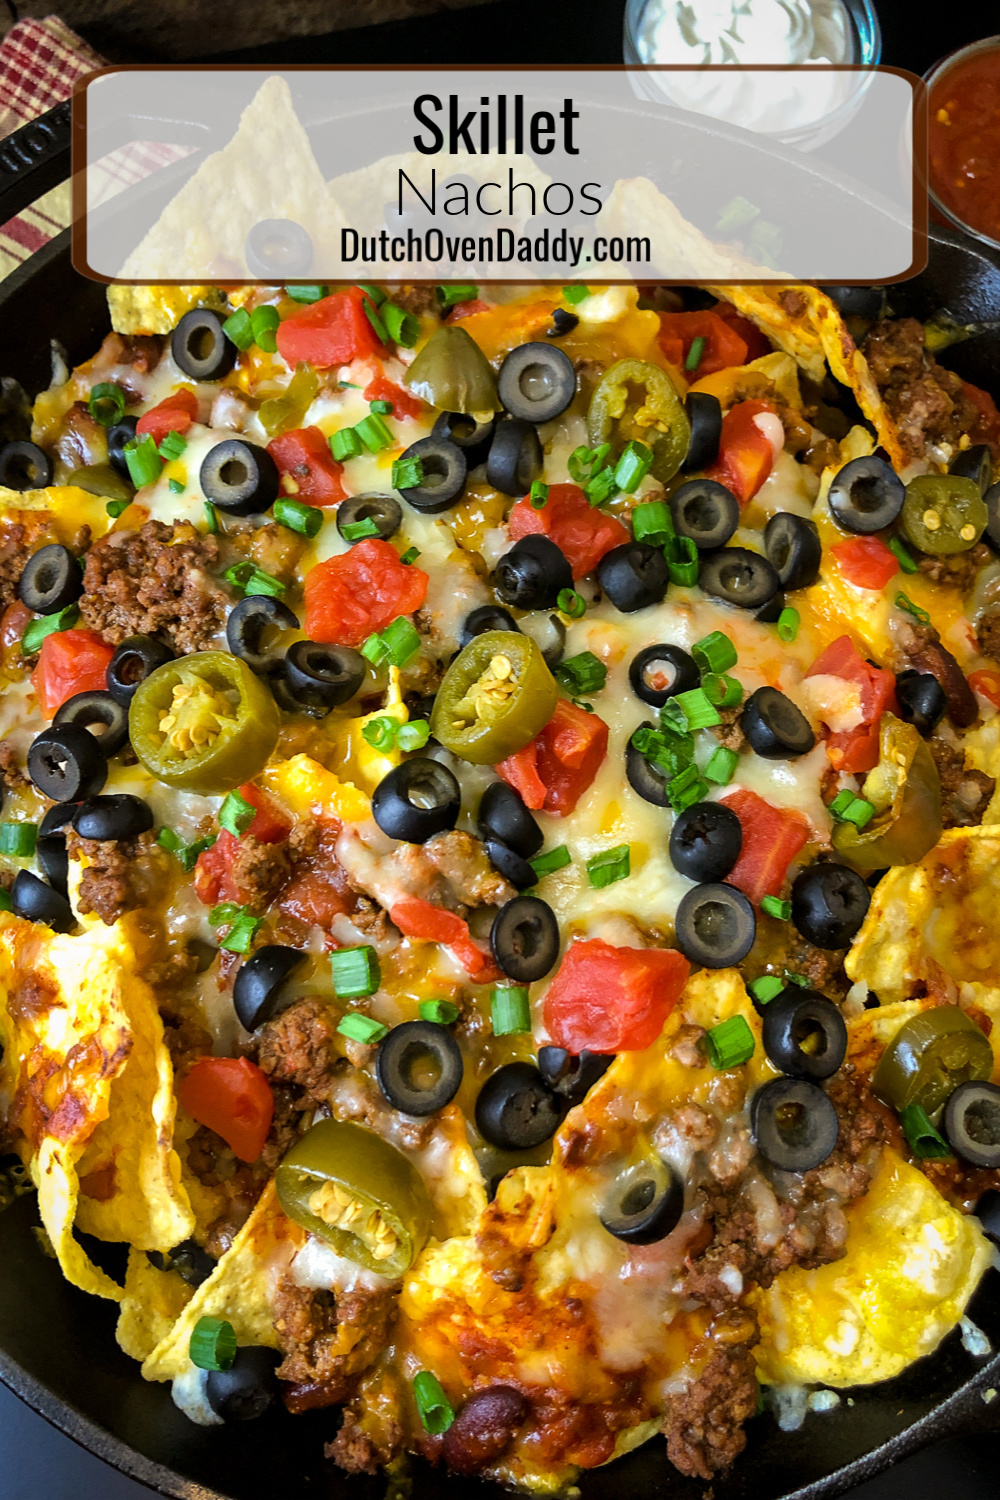 Skillet full of loaded nachos with sour cream and salsa in the background.